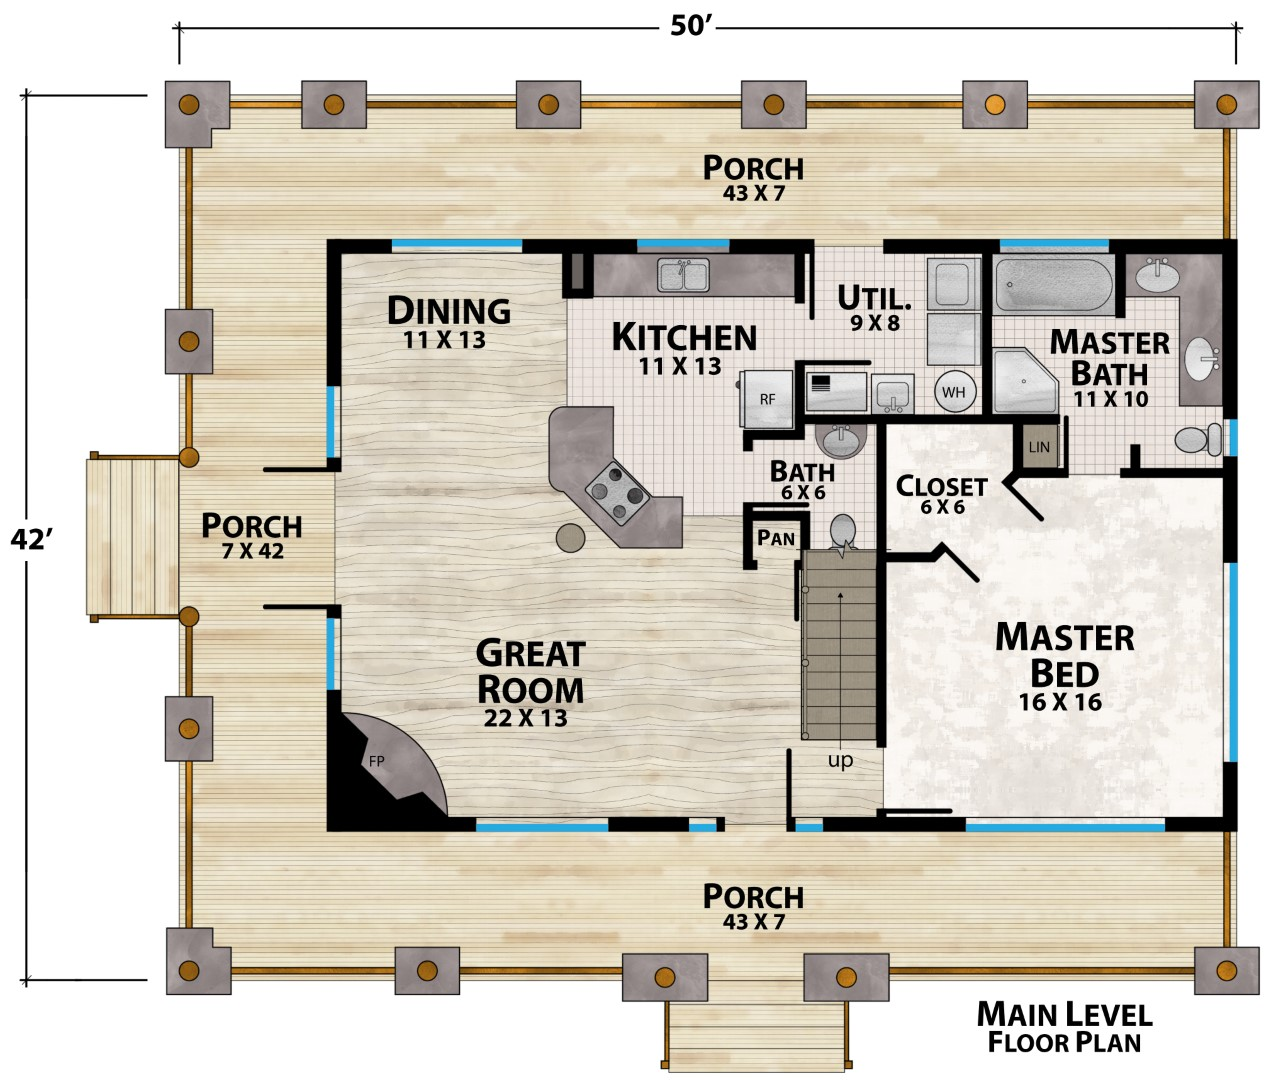 Mountain View Lodge Main Floor Plan by Natural Element Homes